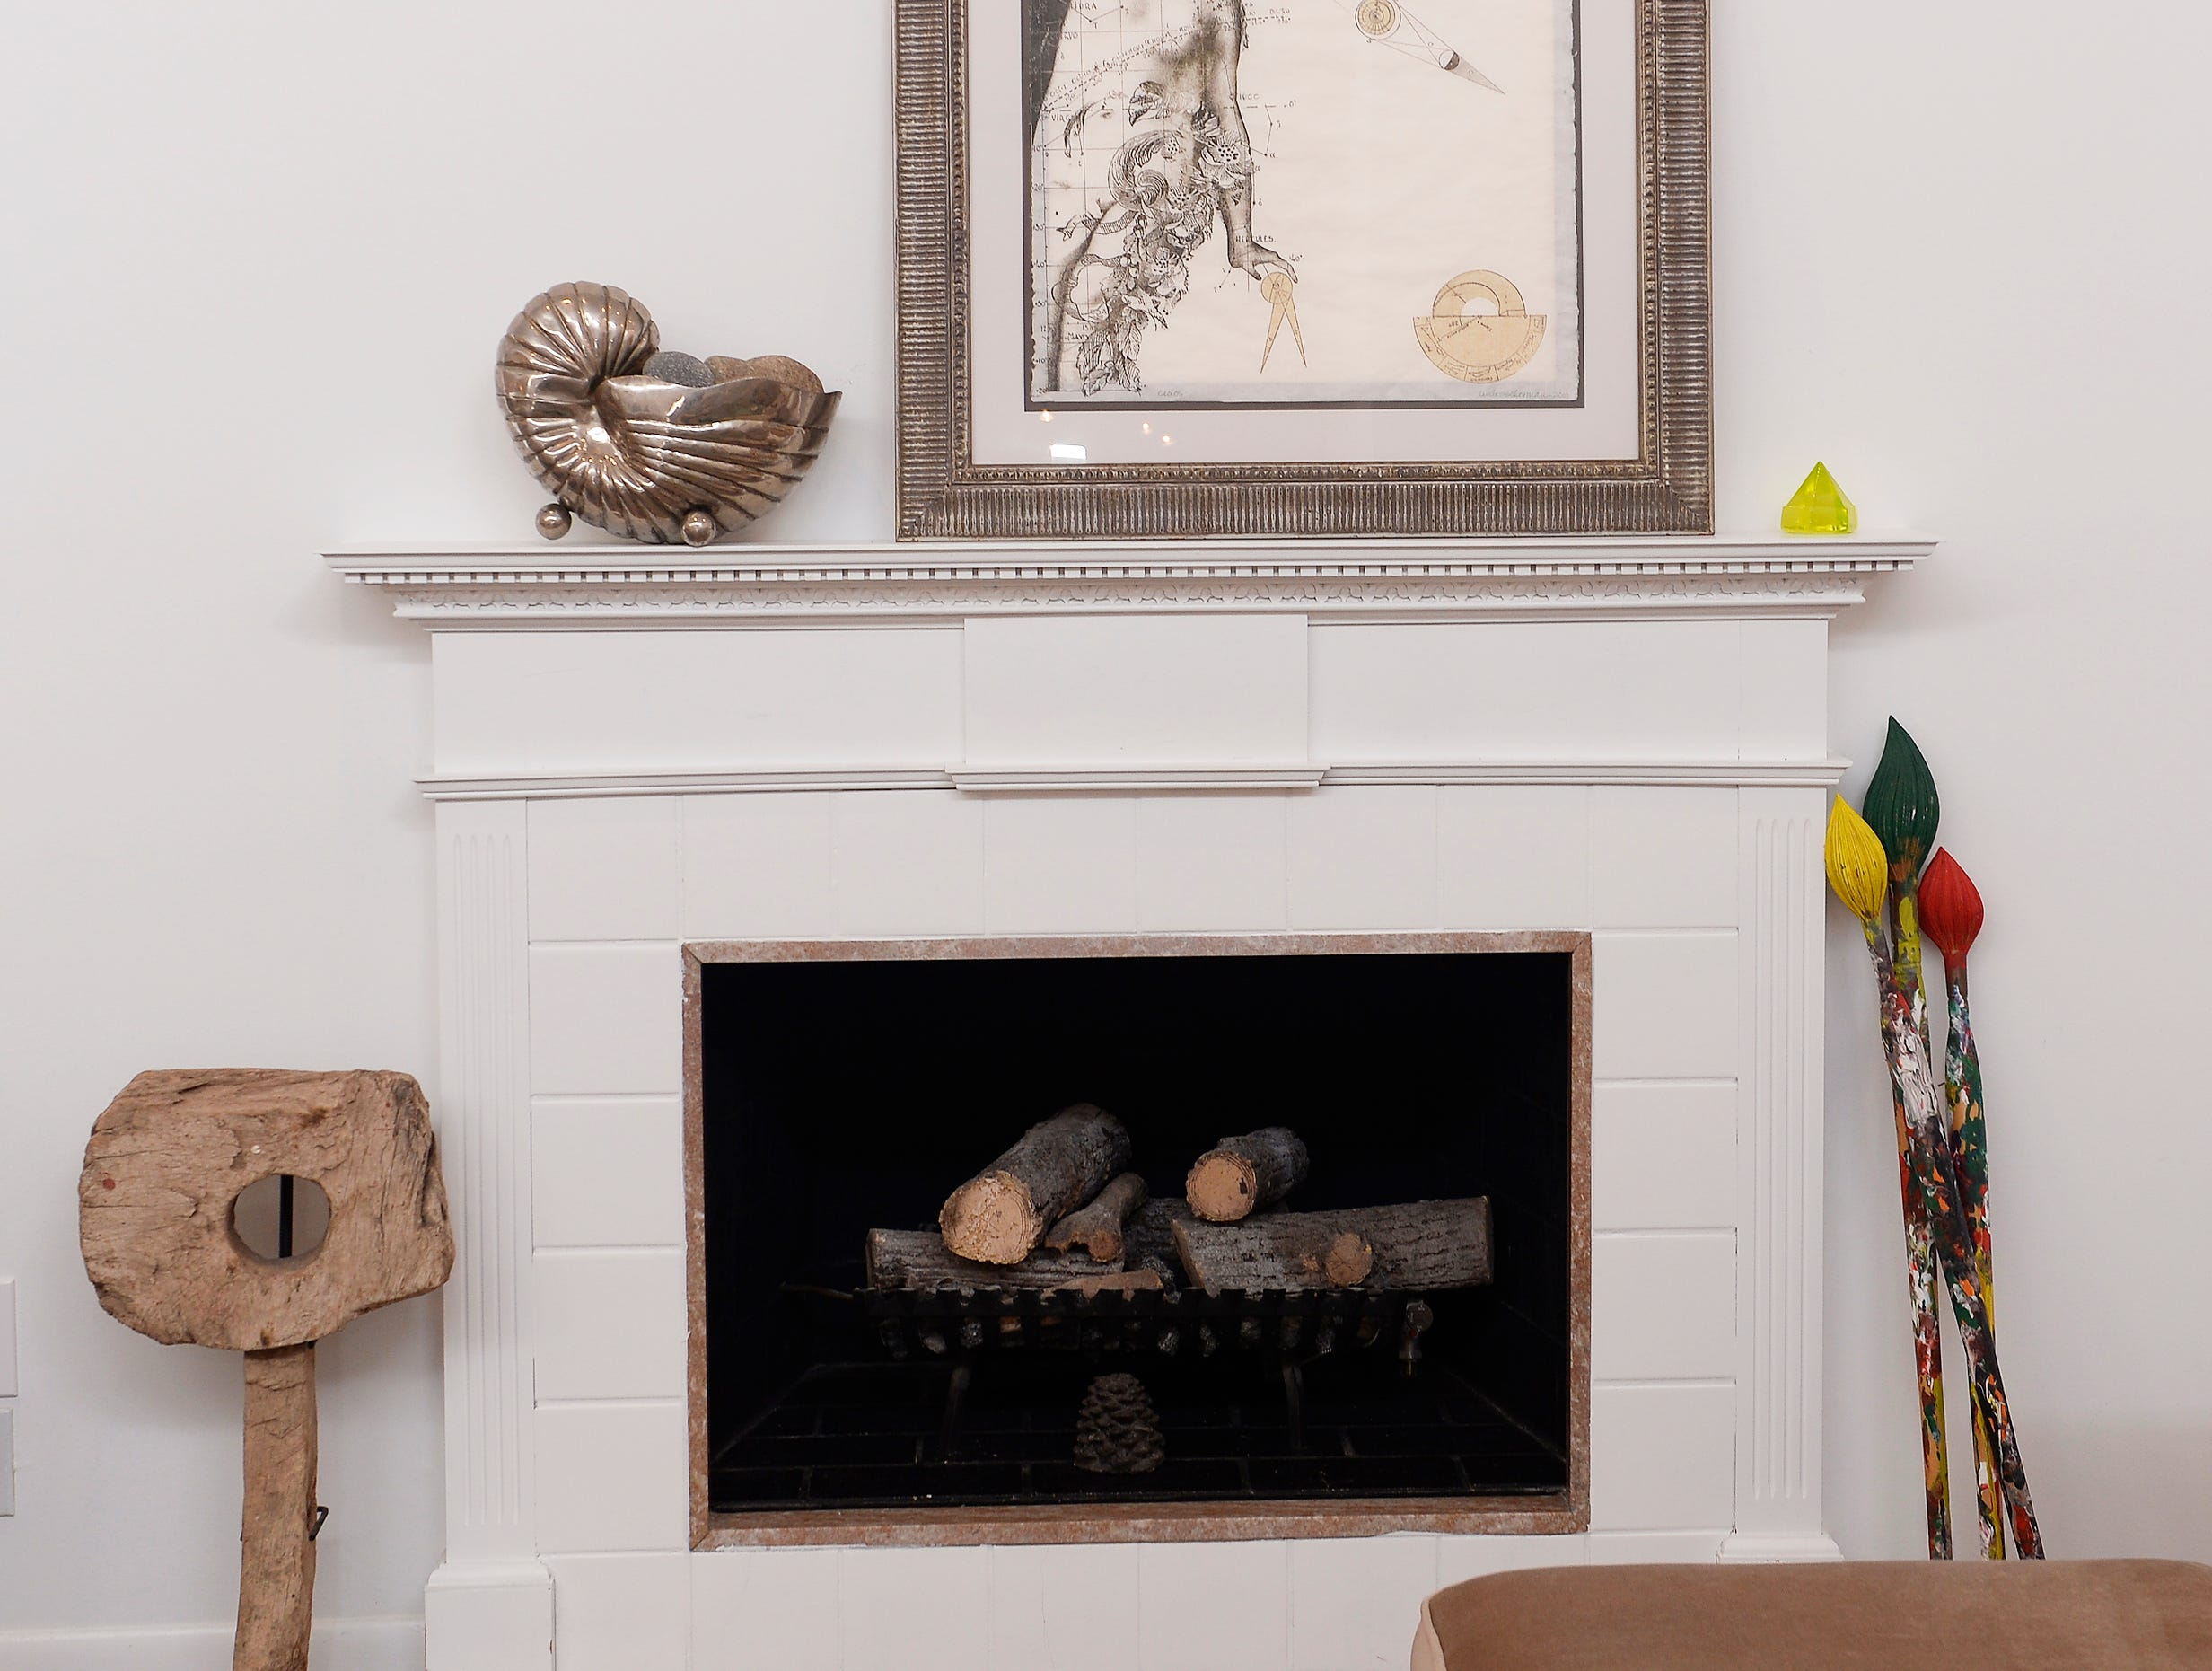 The fireplace with wood paint brushes inside the living room.